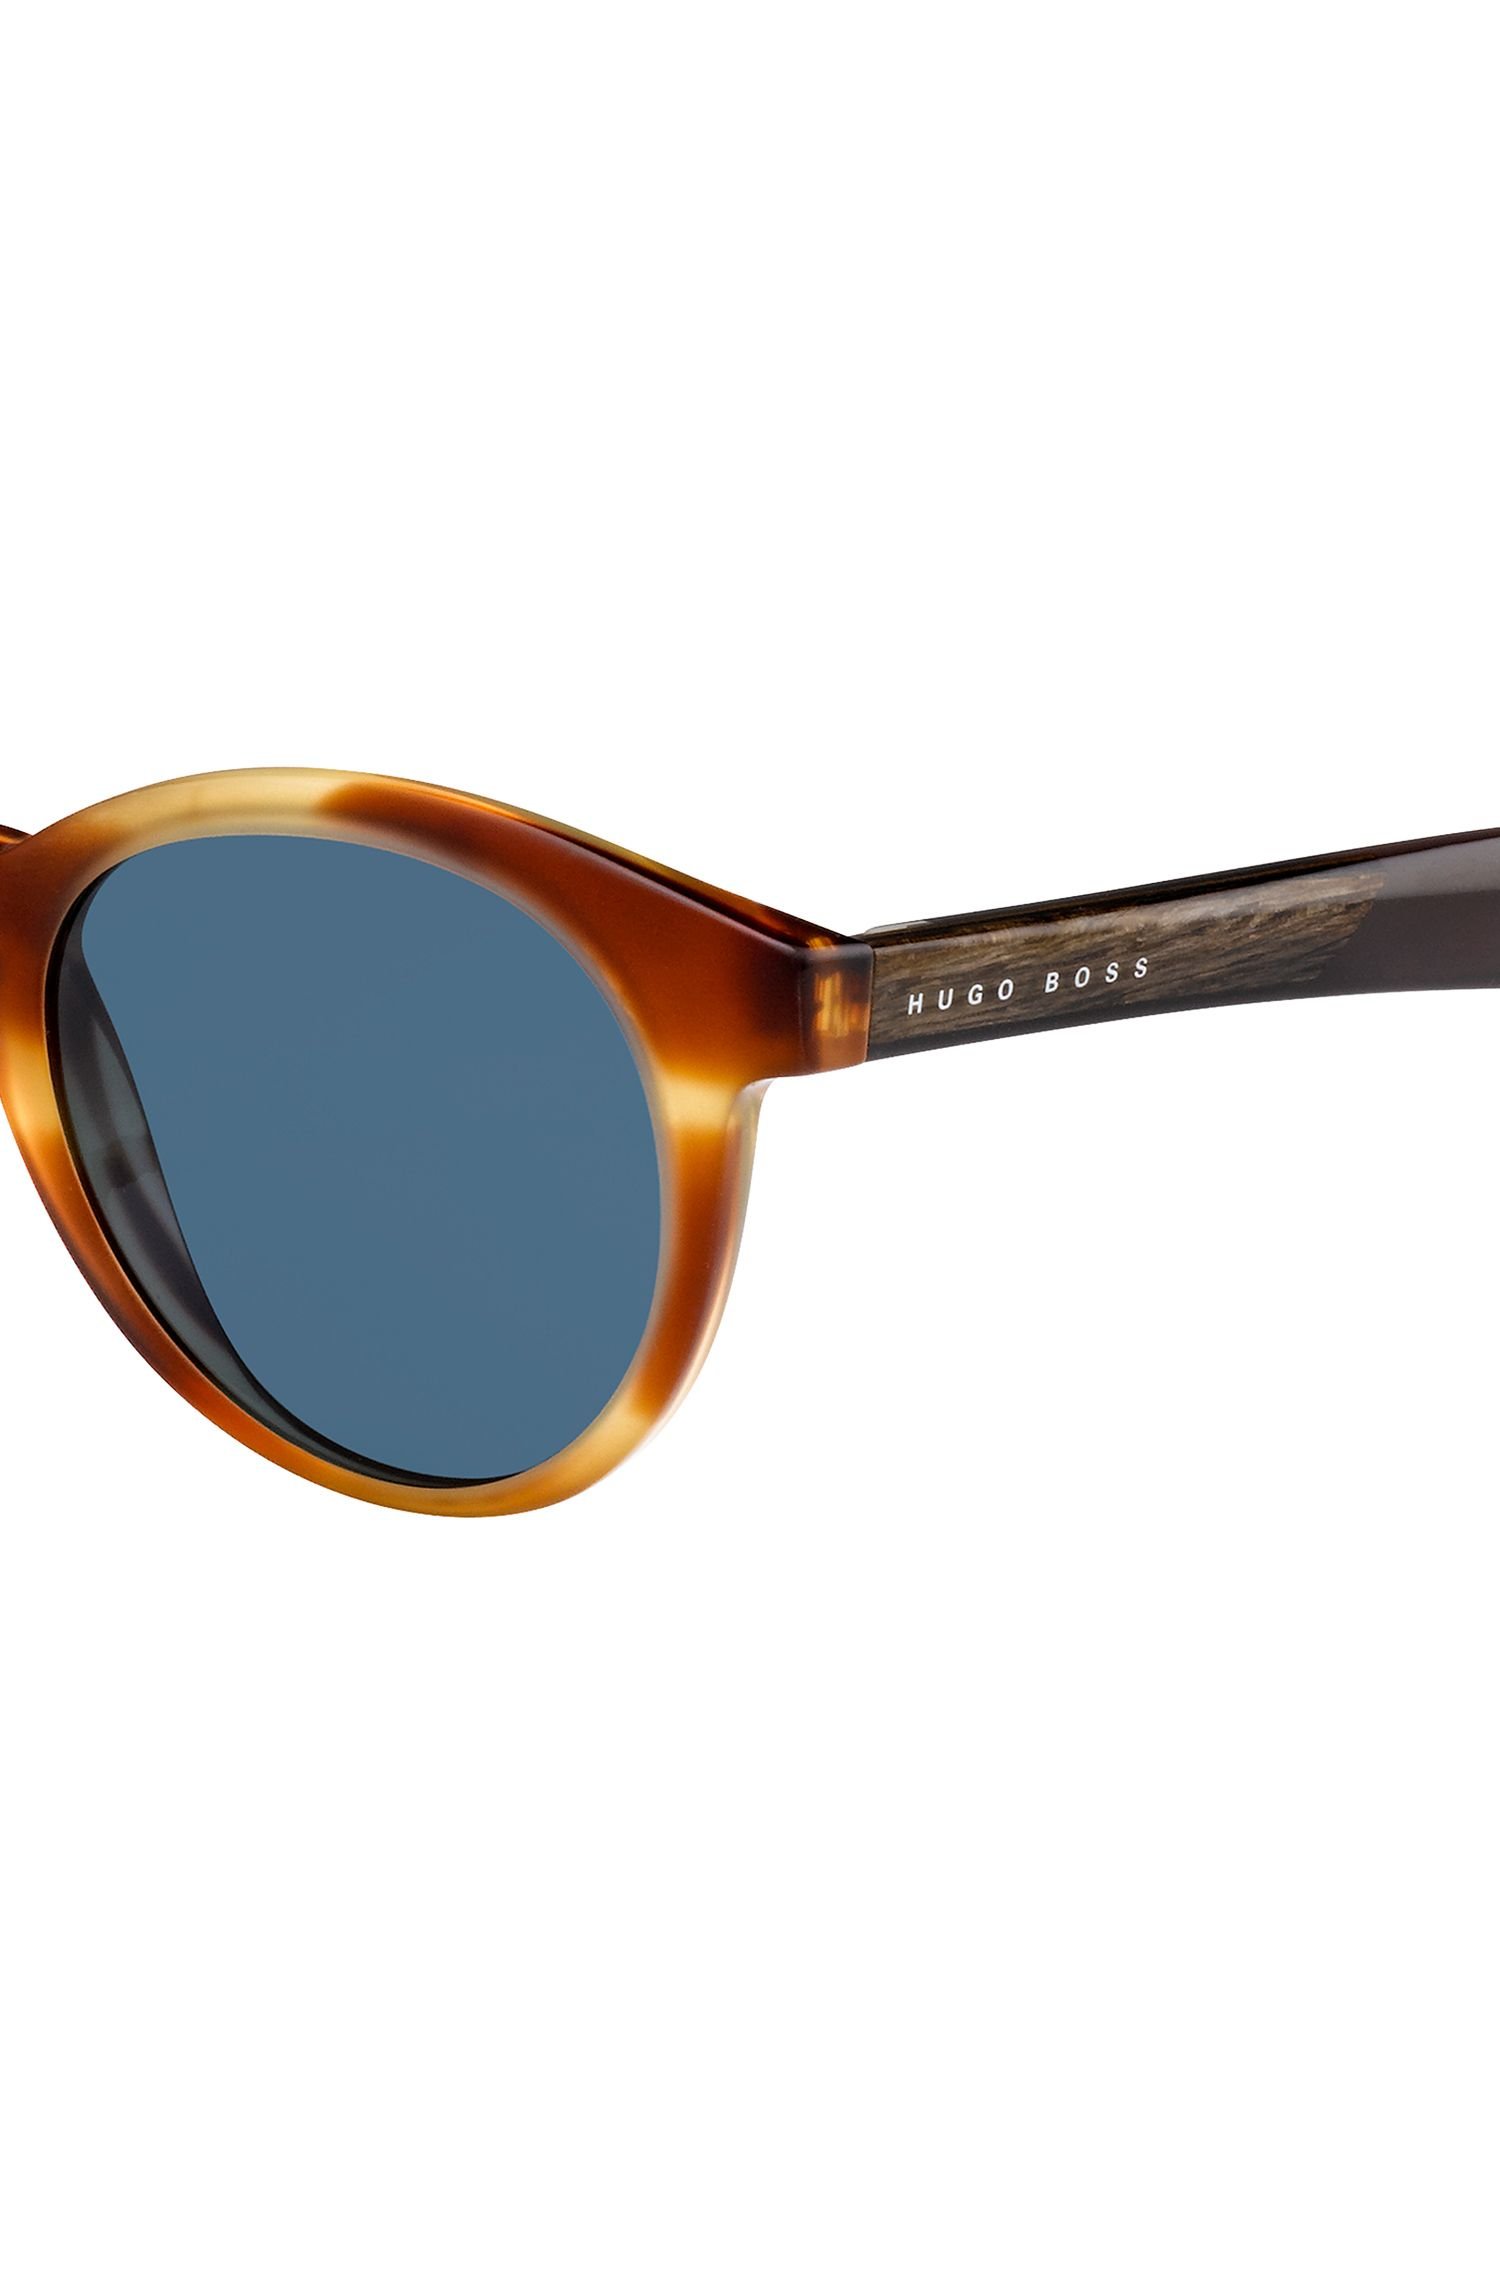 Round-framed sunglasses with wood trim, Patterned